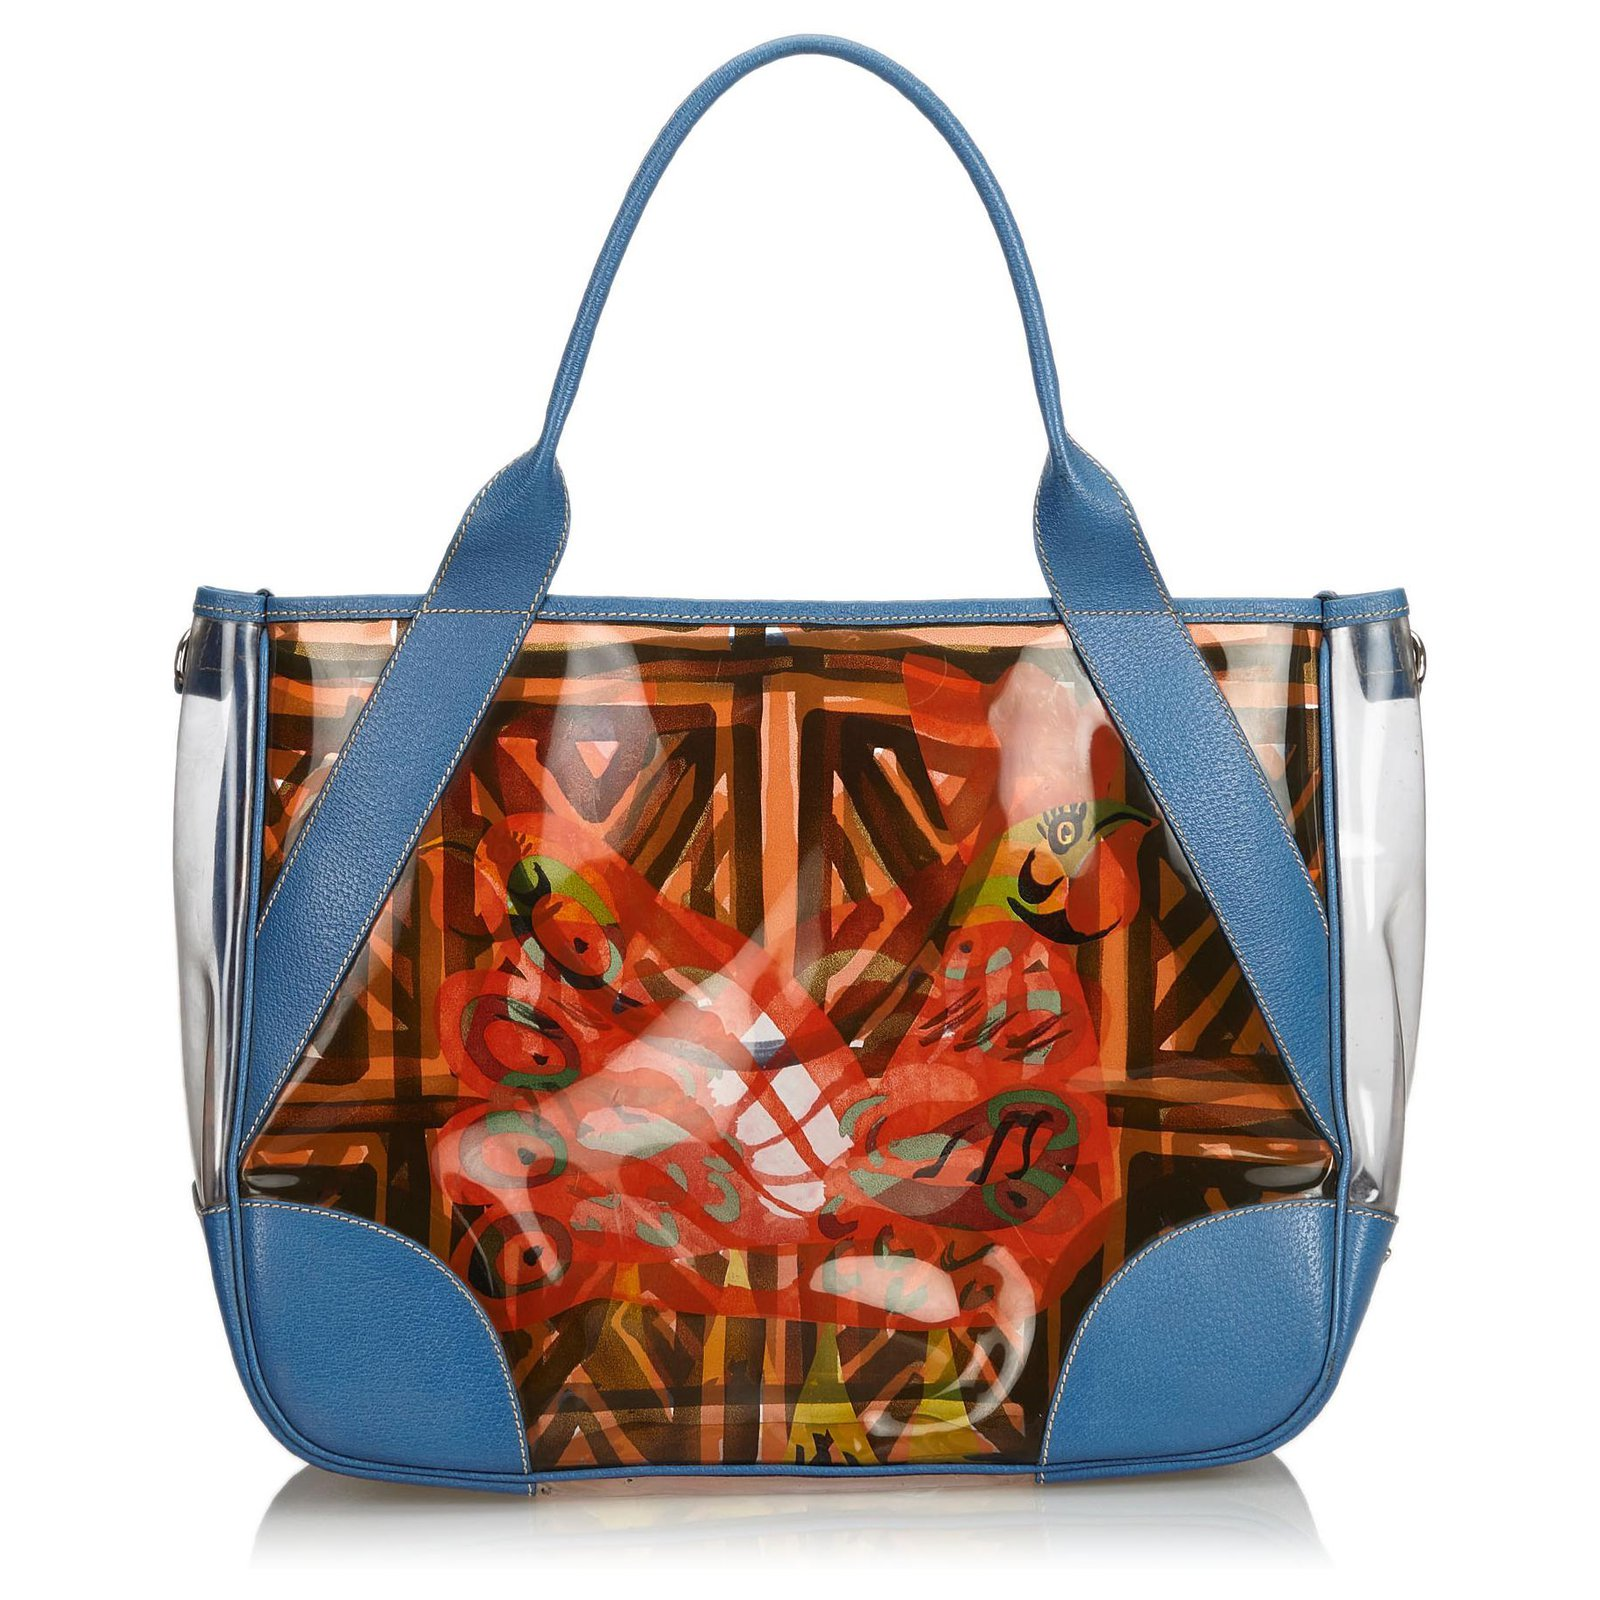 b8675dd875db Prada Printed Vinyl Tote Bag Totes Leather